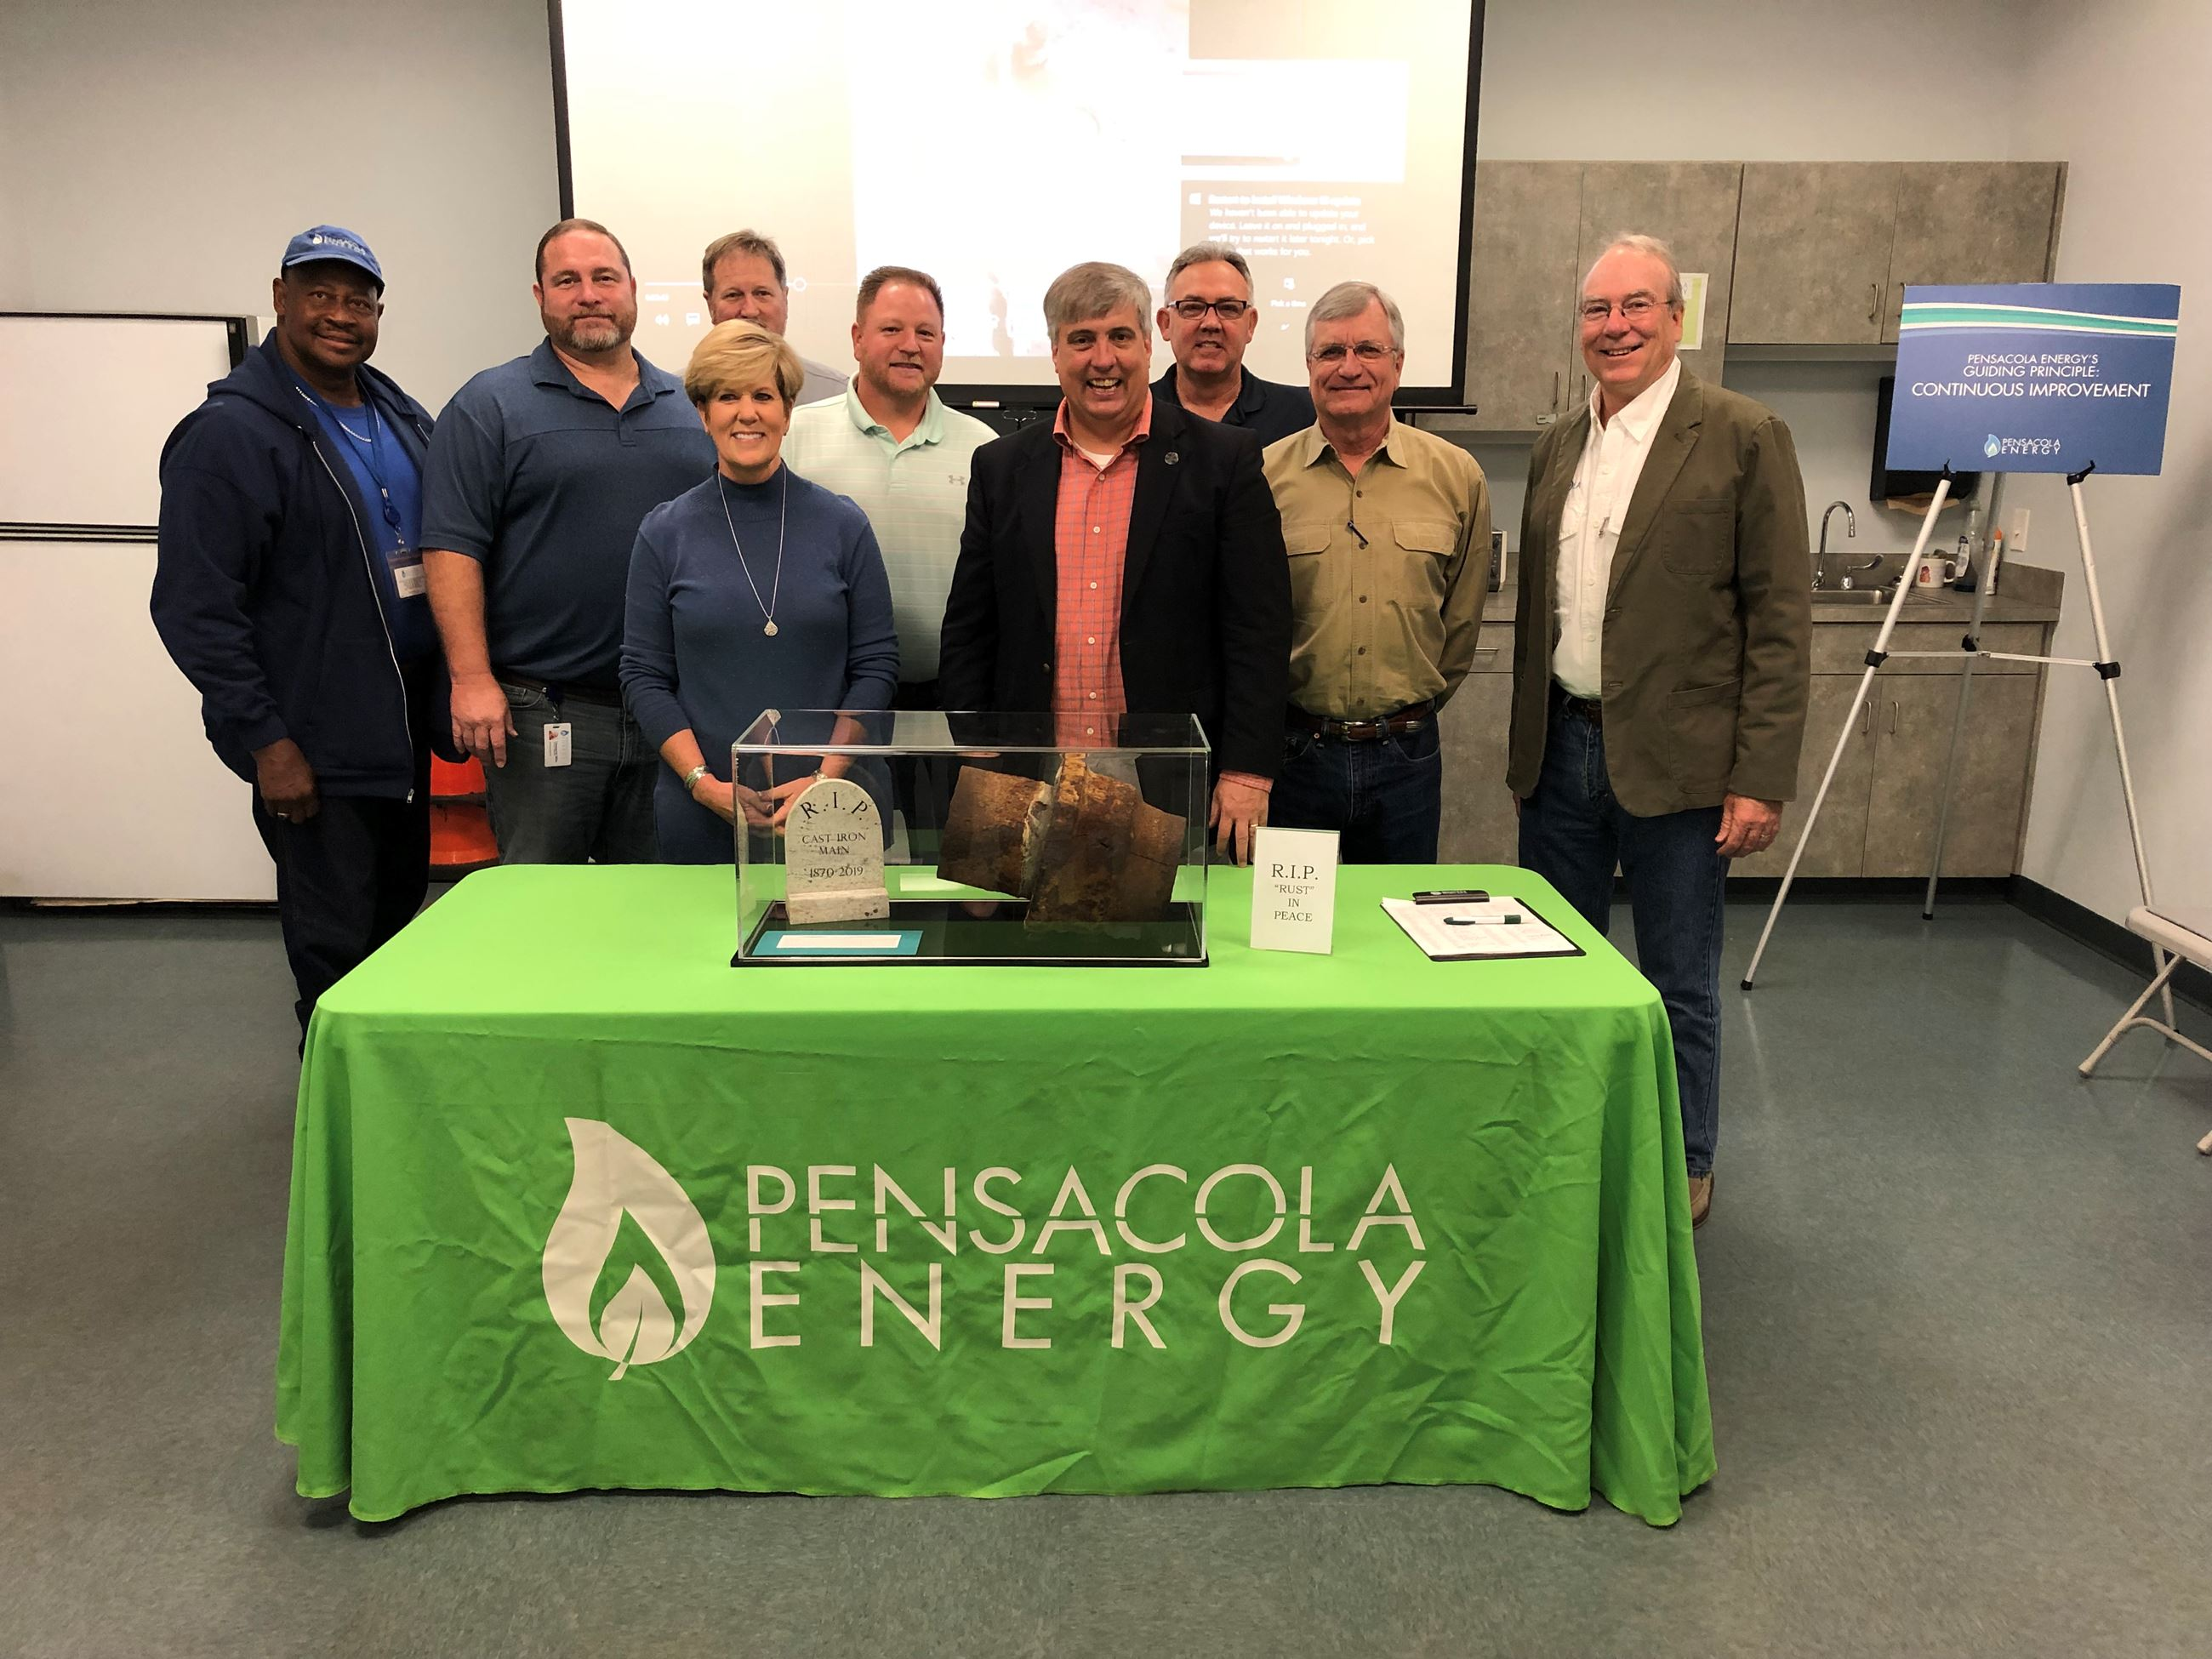 The mayor and Pensacola Energy staff pose for a group photo